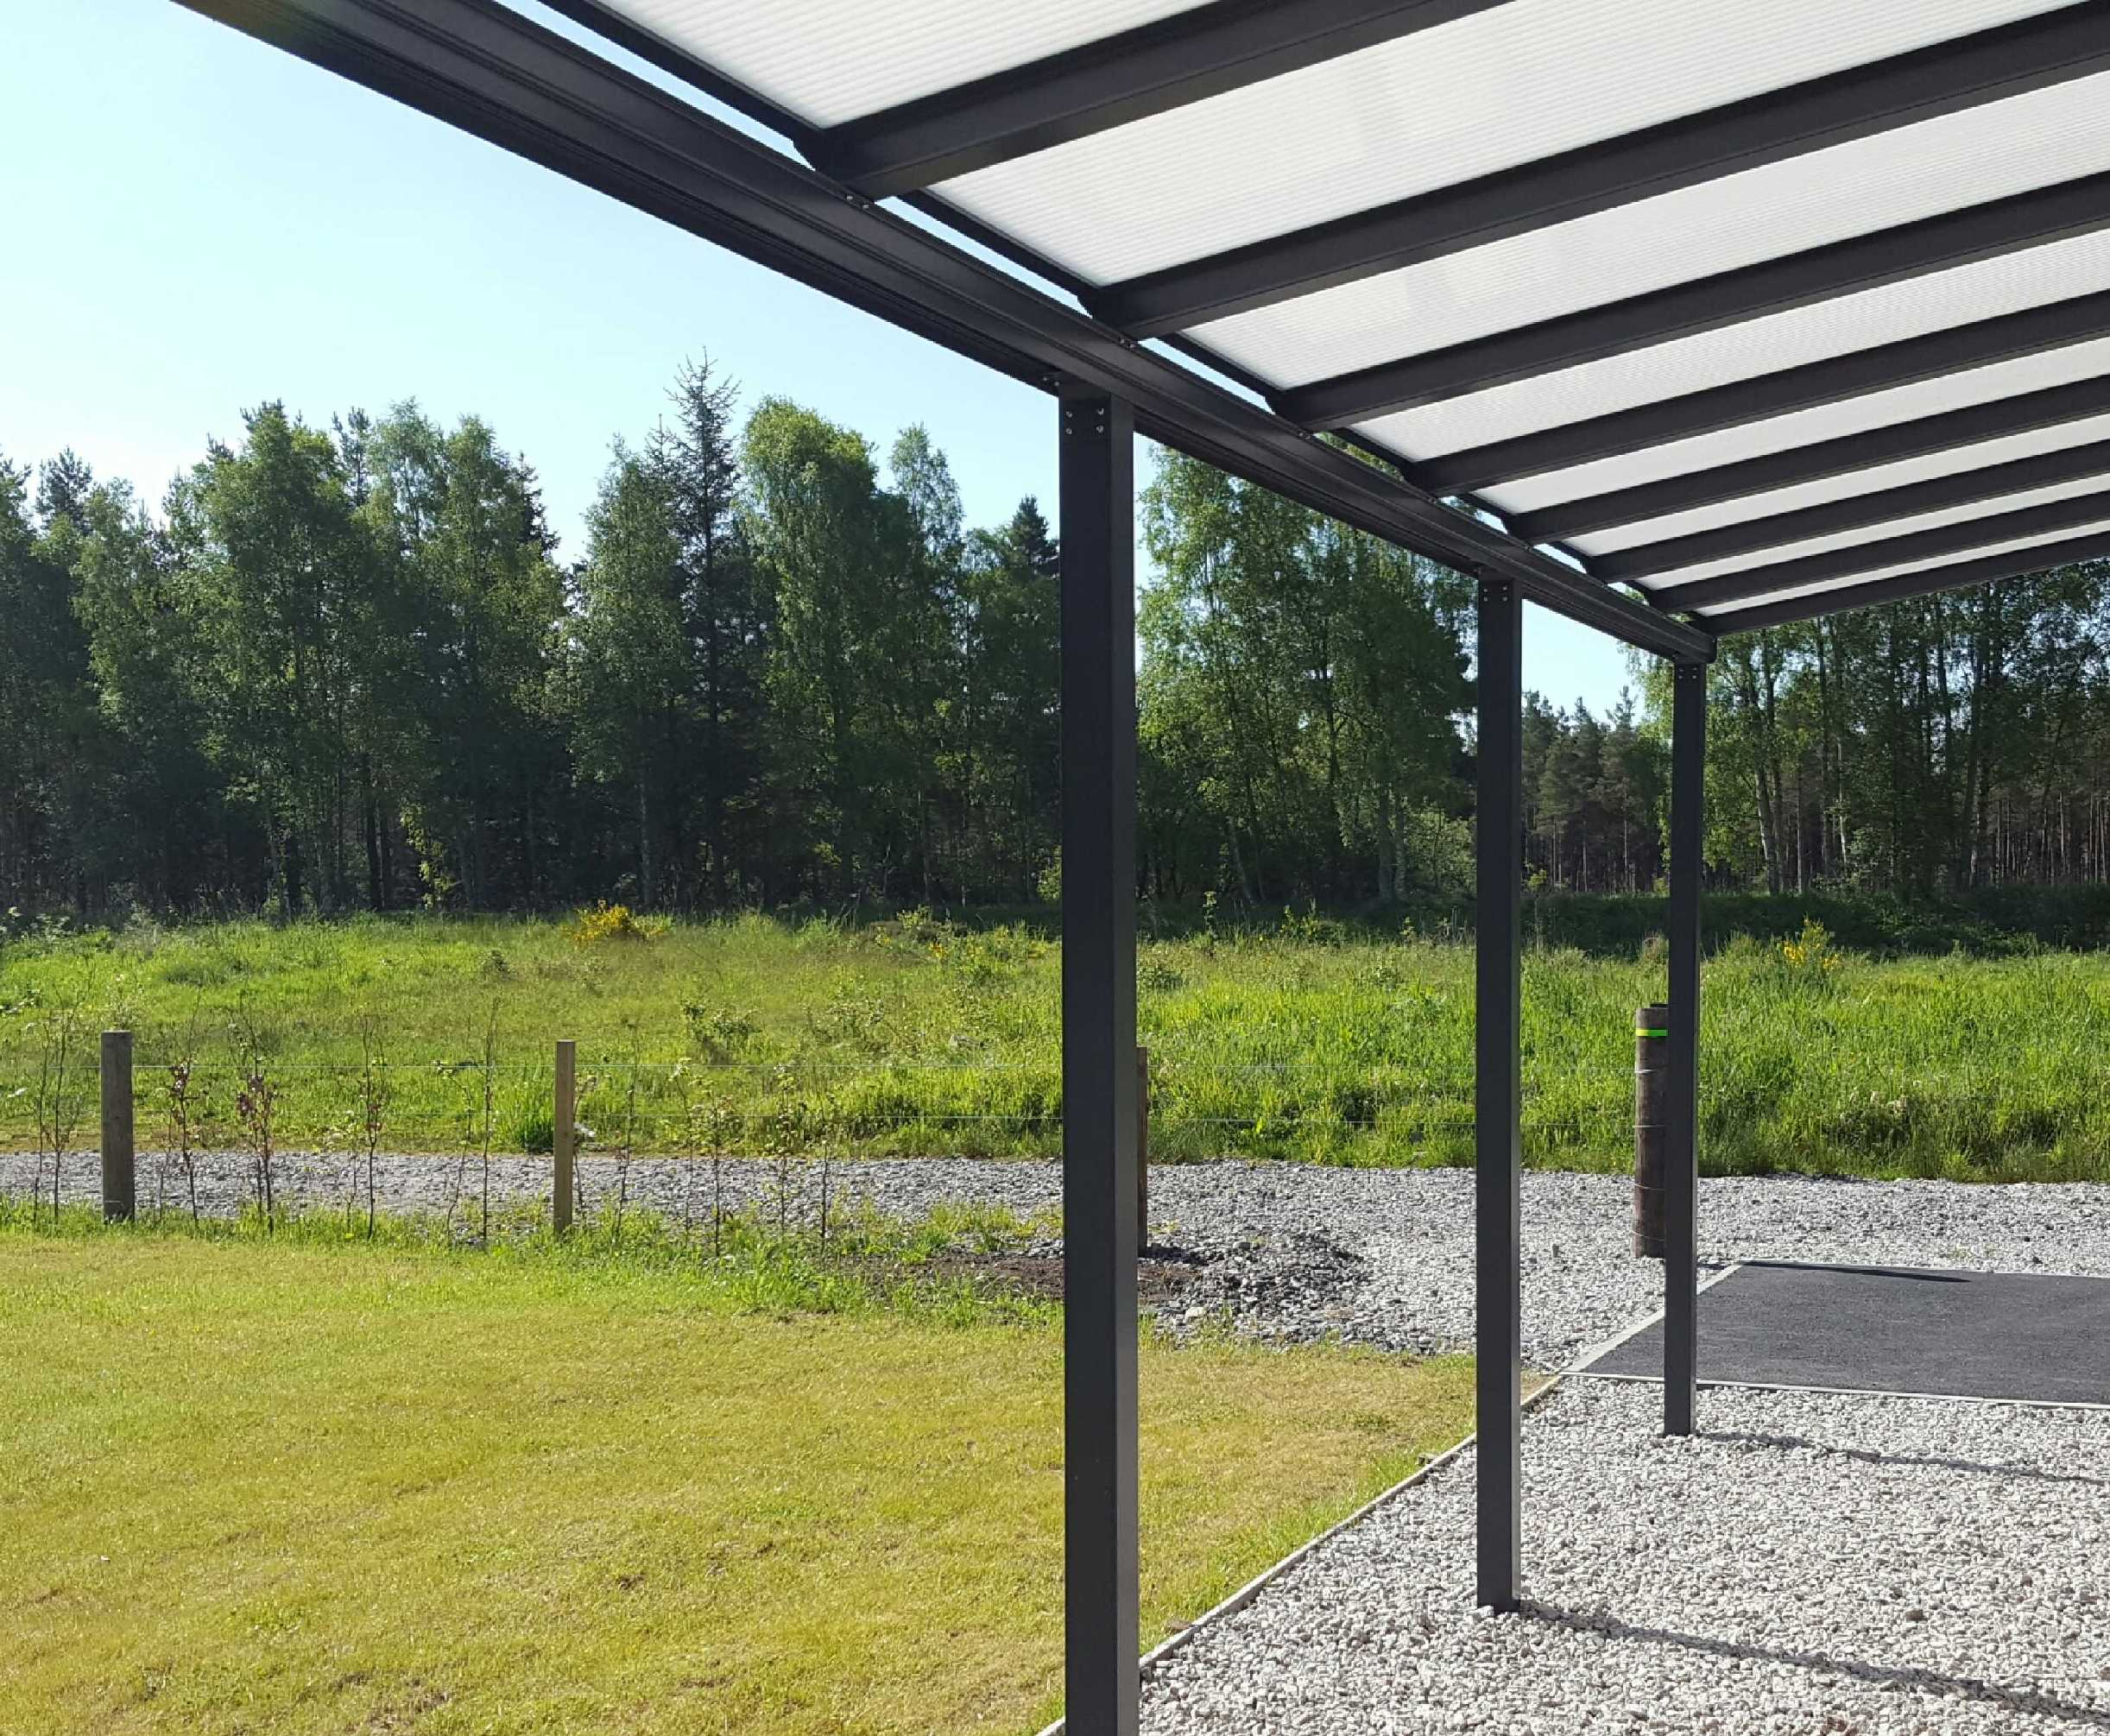 Omega Smart Lean-To Canopy, Anthracite Grey, UNGLAZED for 6mm Glazing - 3.5m (W) x 1.5m (P), (3) Supporting Posts